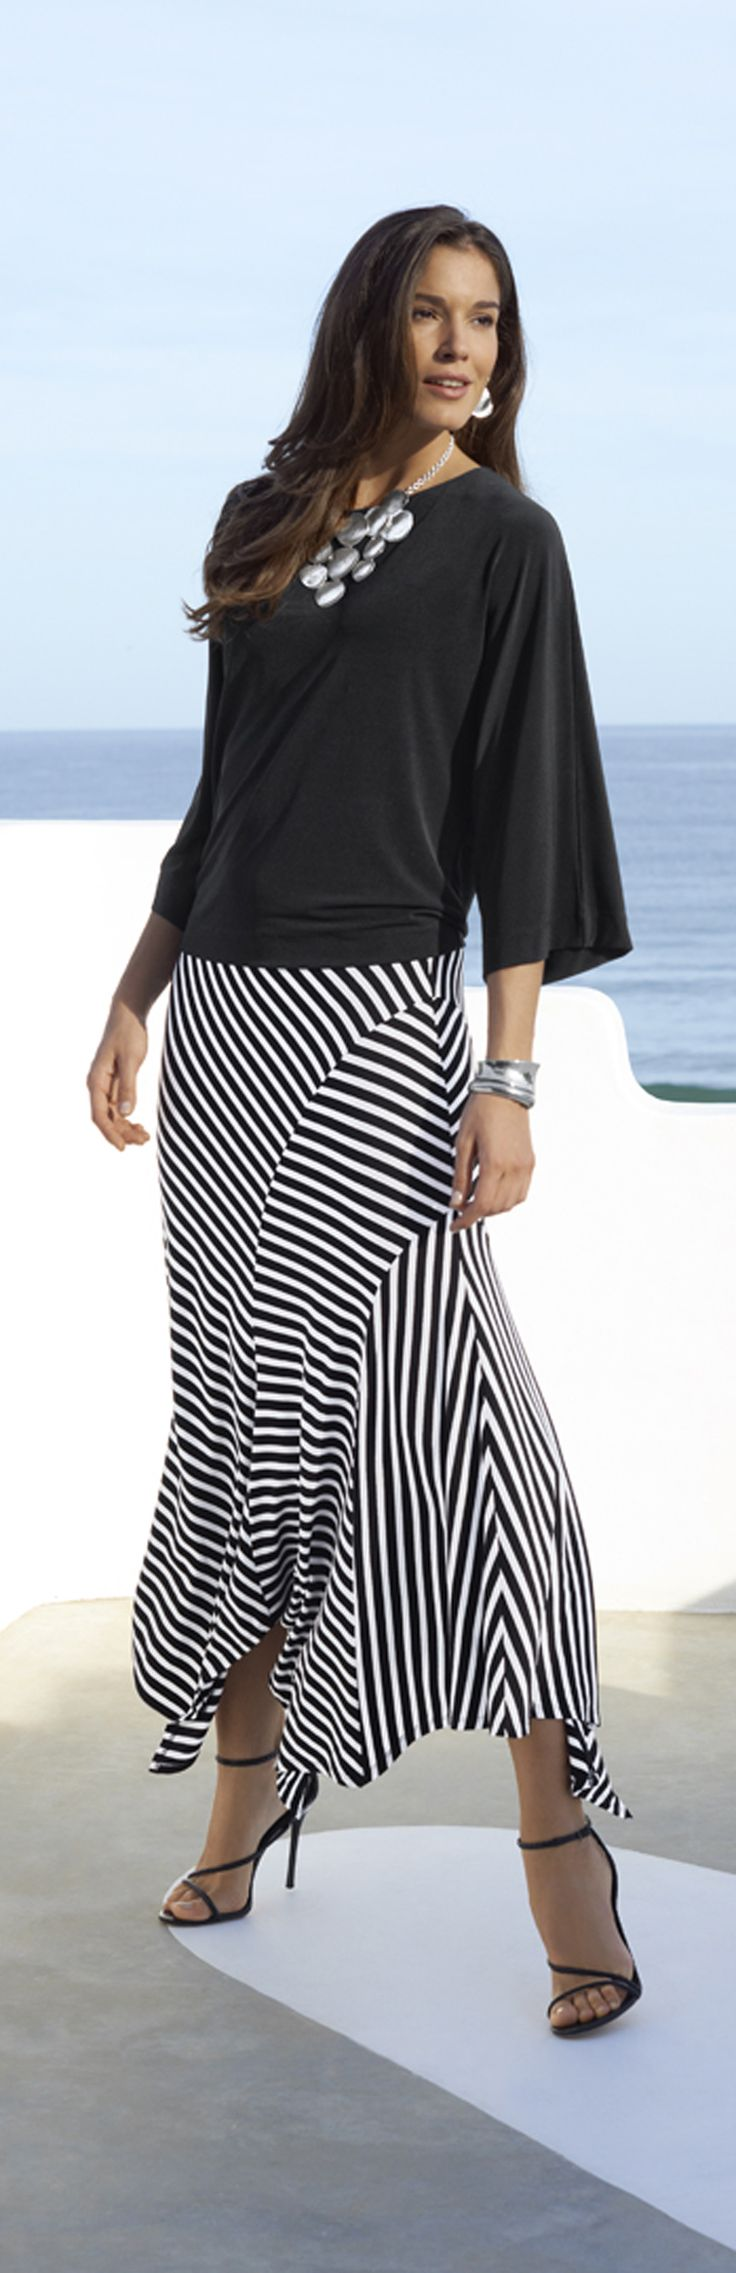 Chico's Knit Kit East West Top and Stripe Avery Maxi Skirt.